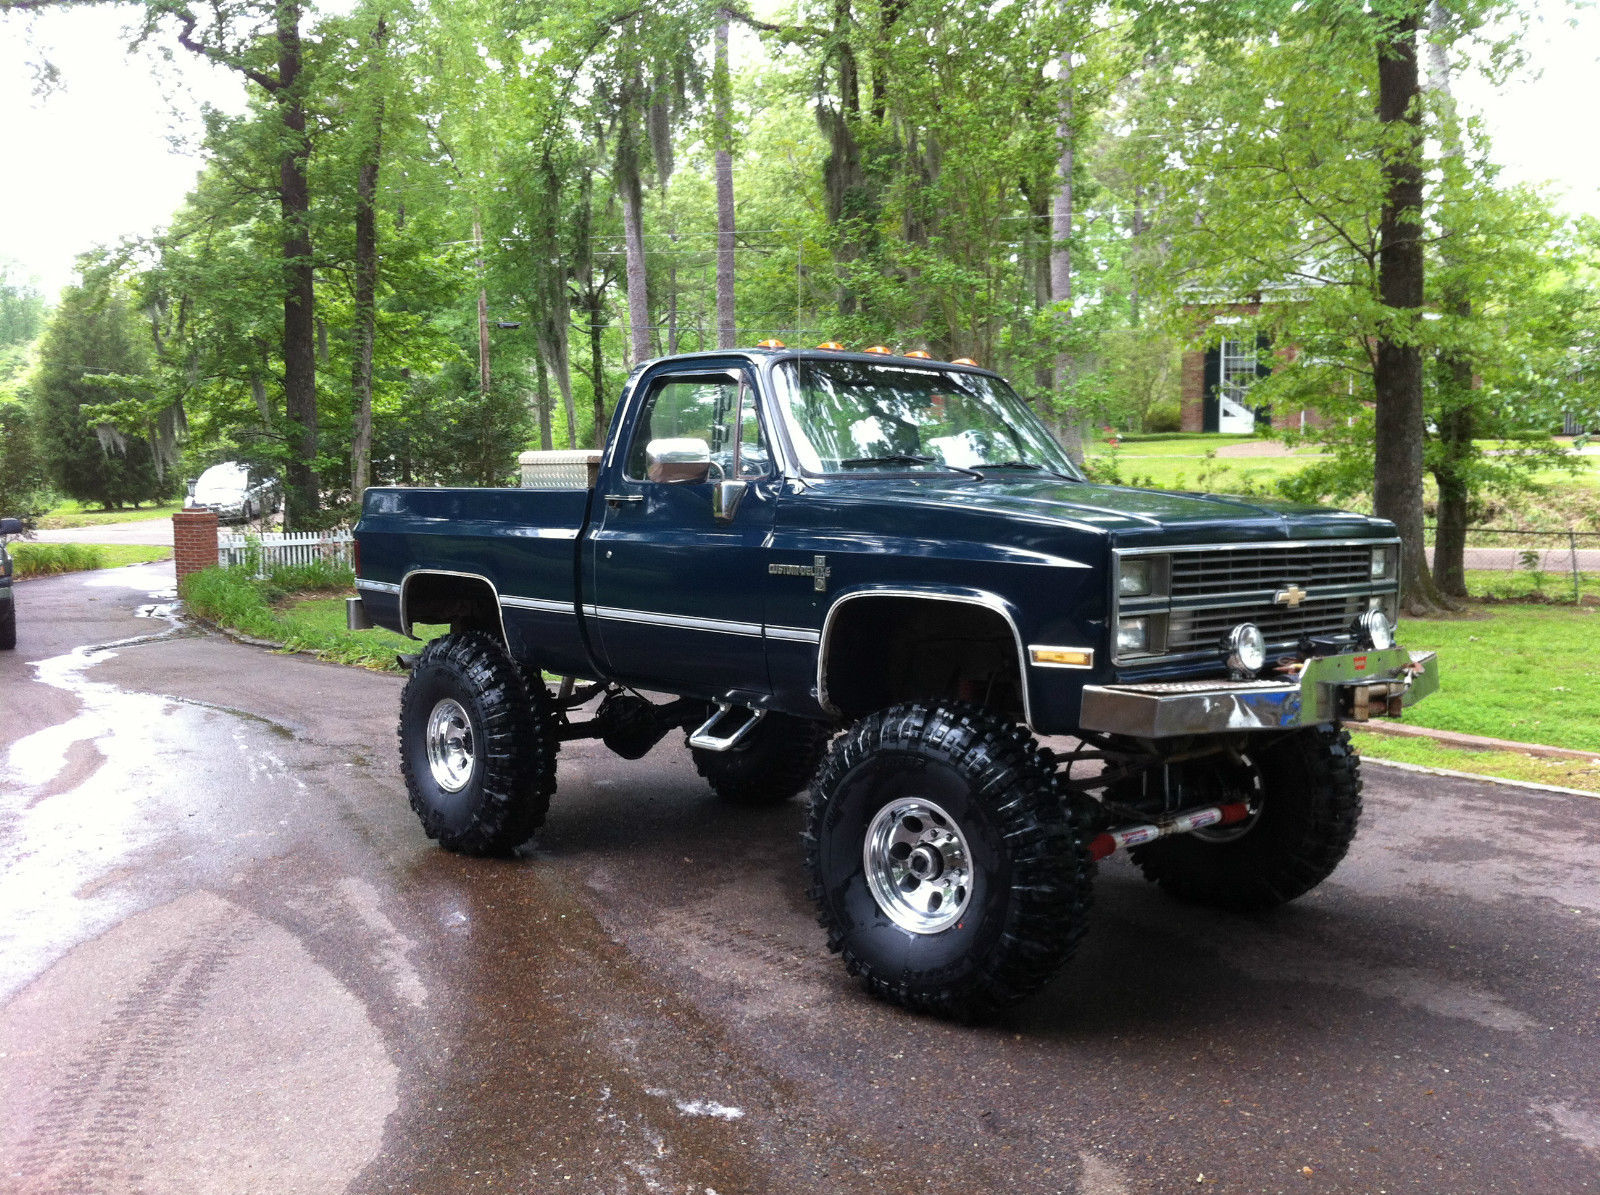 Squarebody Chevy Pickup Truck For Sale In Natchez Mississippi United States For Sale Photos Technical Specifications Description